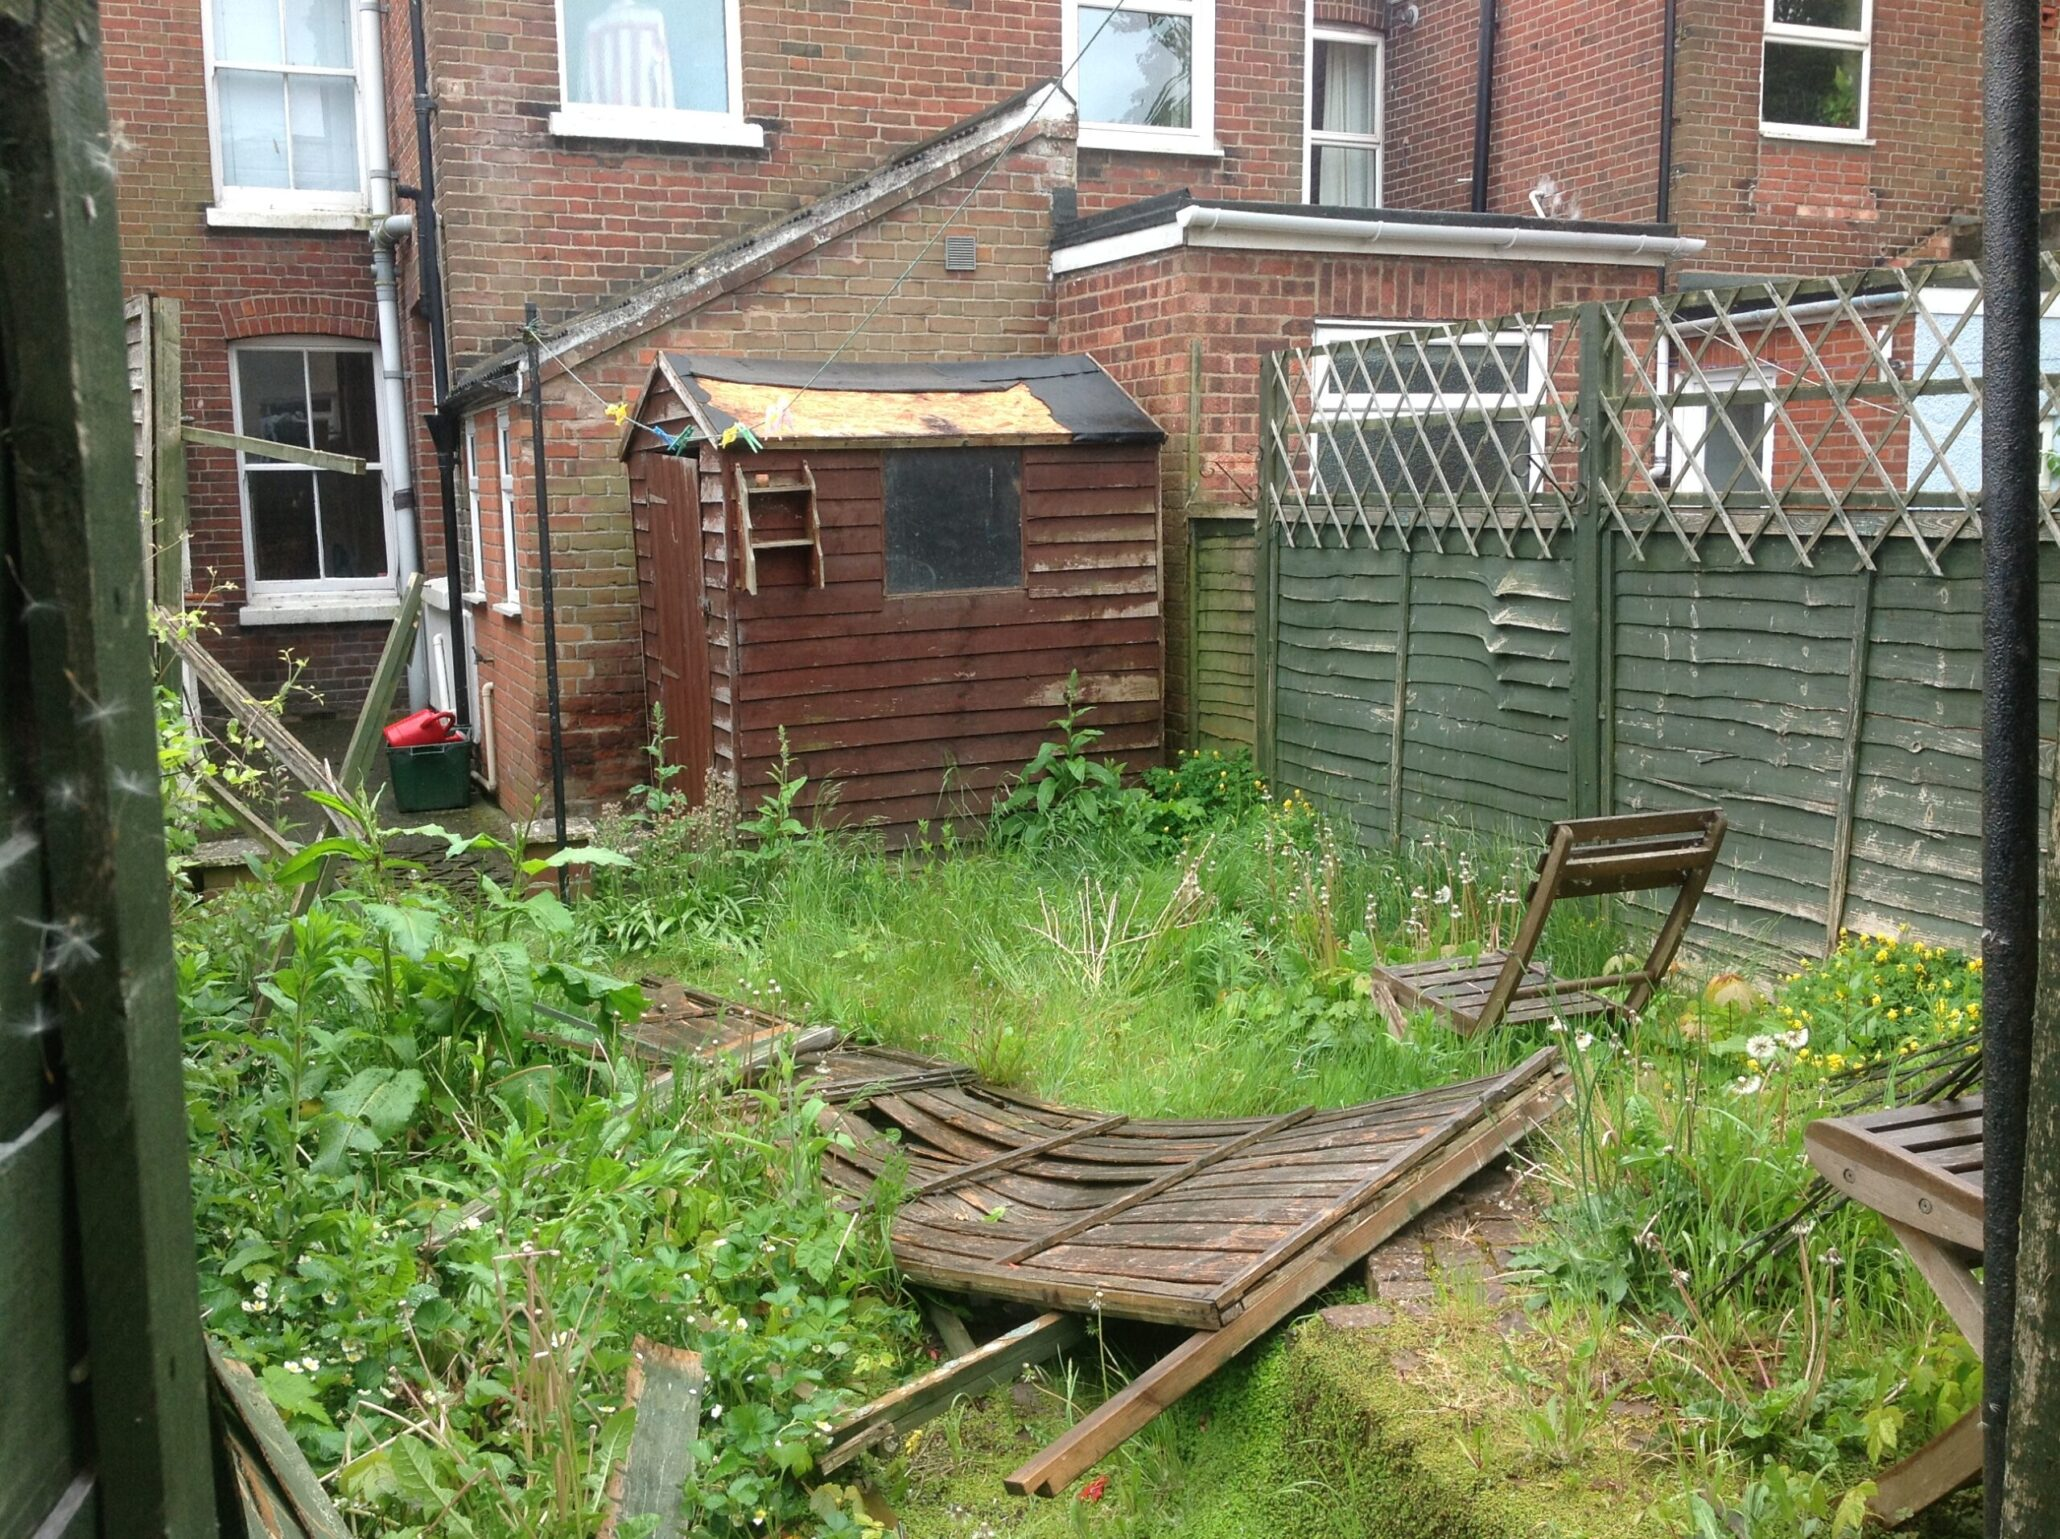 Norwich garden fence replacement.